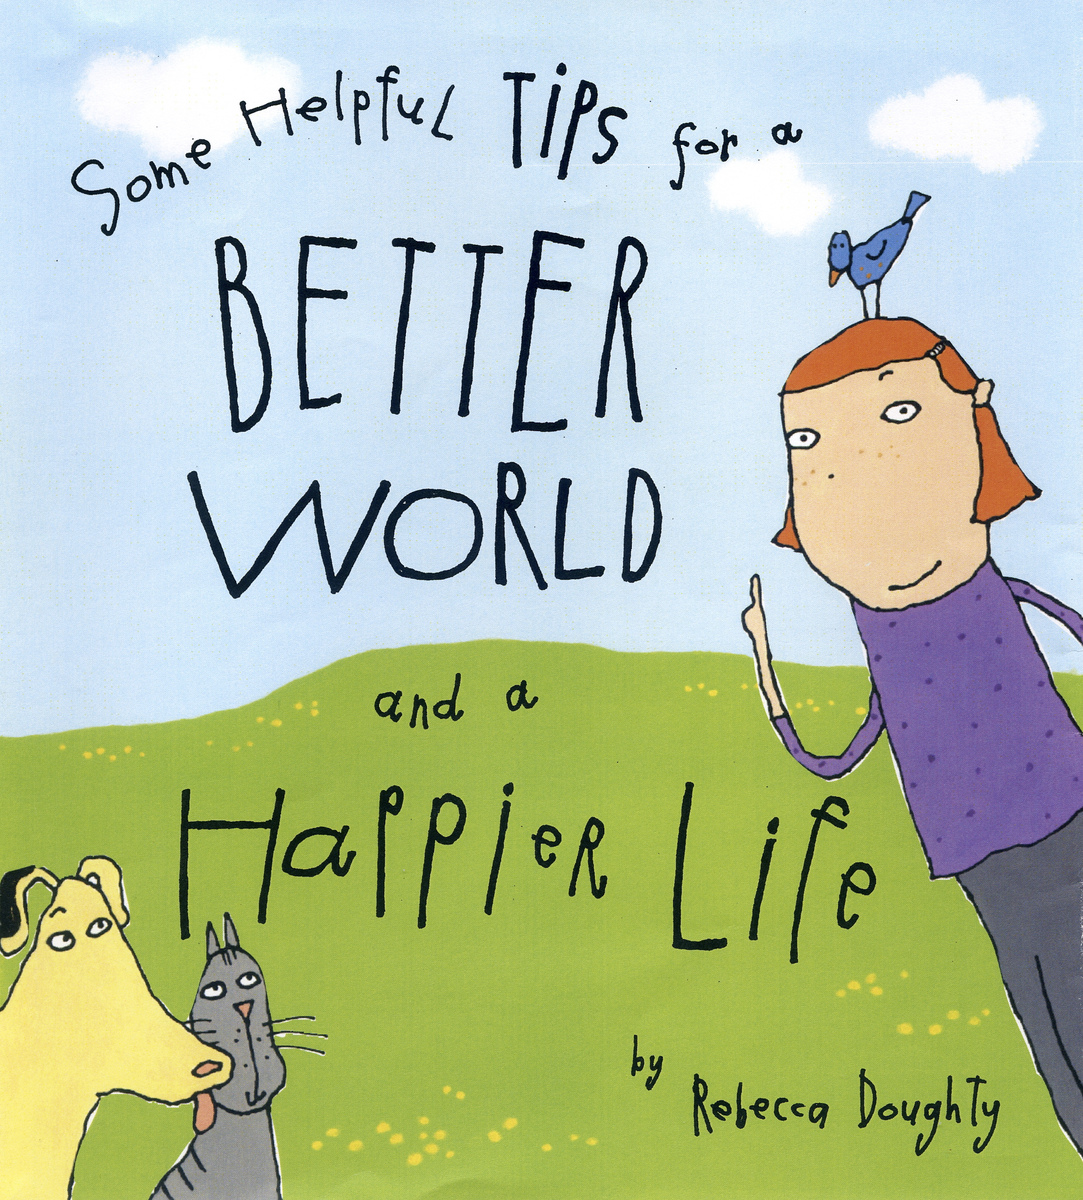 kids books Some Helpful Tips for a Better World and a Happier Life